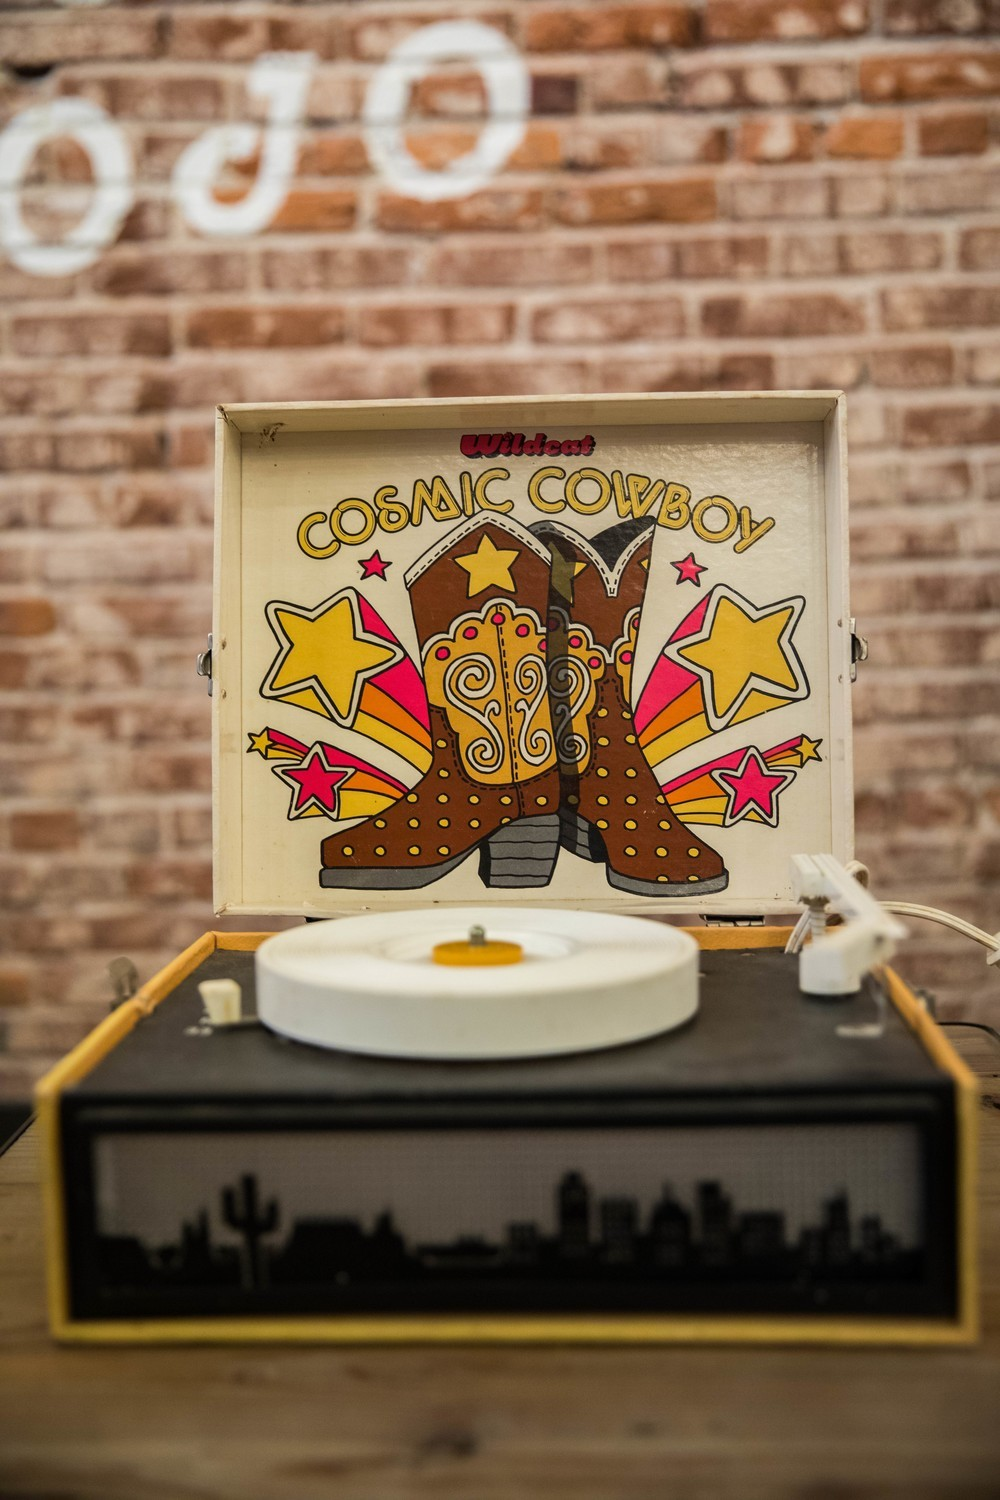 Vintage WILDCAT COSMIC COWBOY Record Player 45s & 33s Portable Suitcase Style